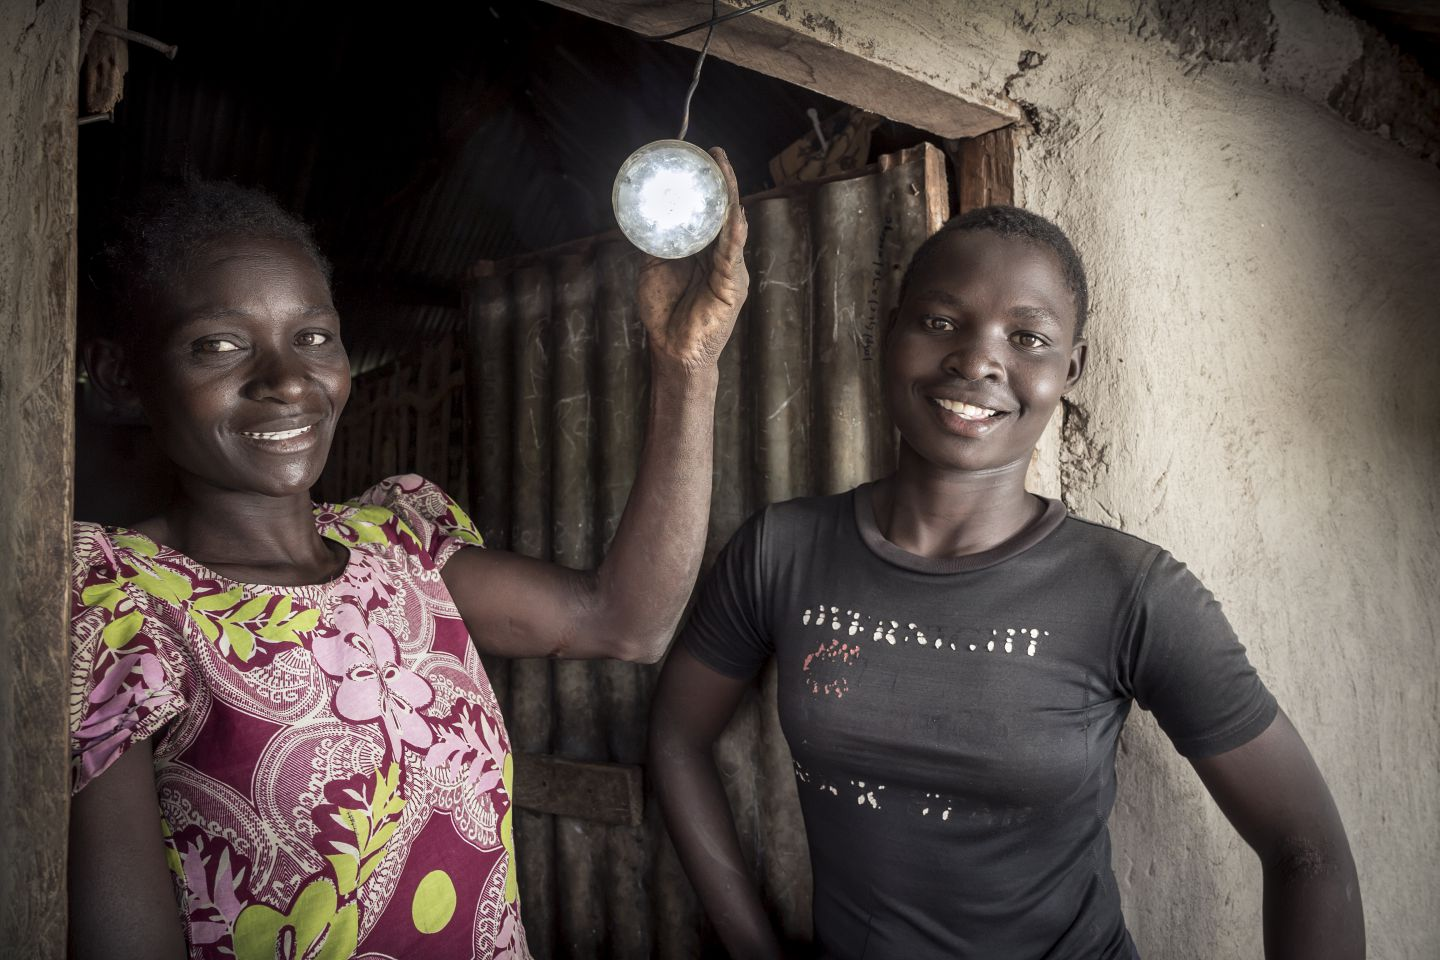 How do grid and off-grid systems enhance or restrict gender equality?